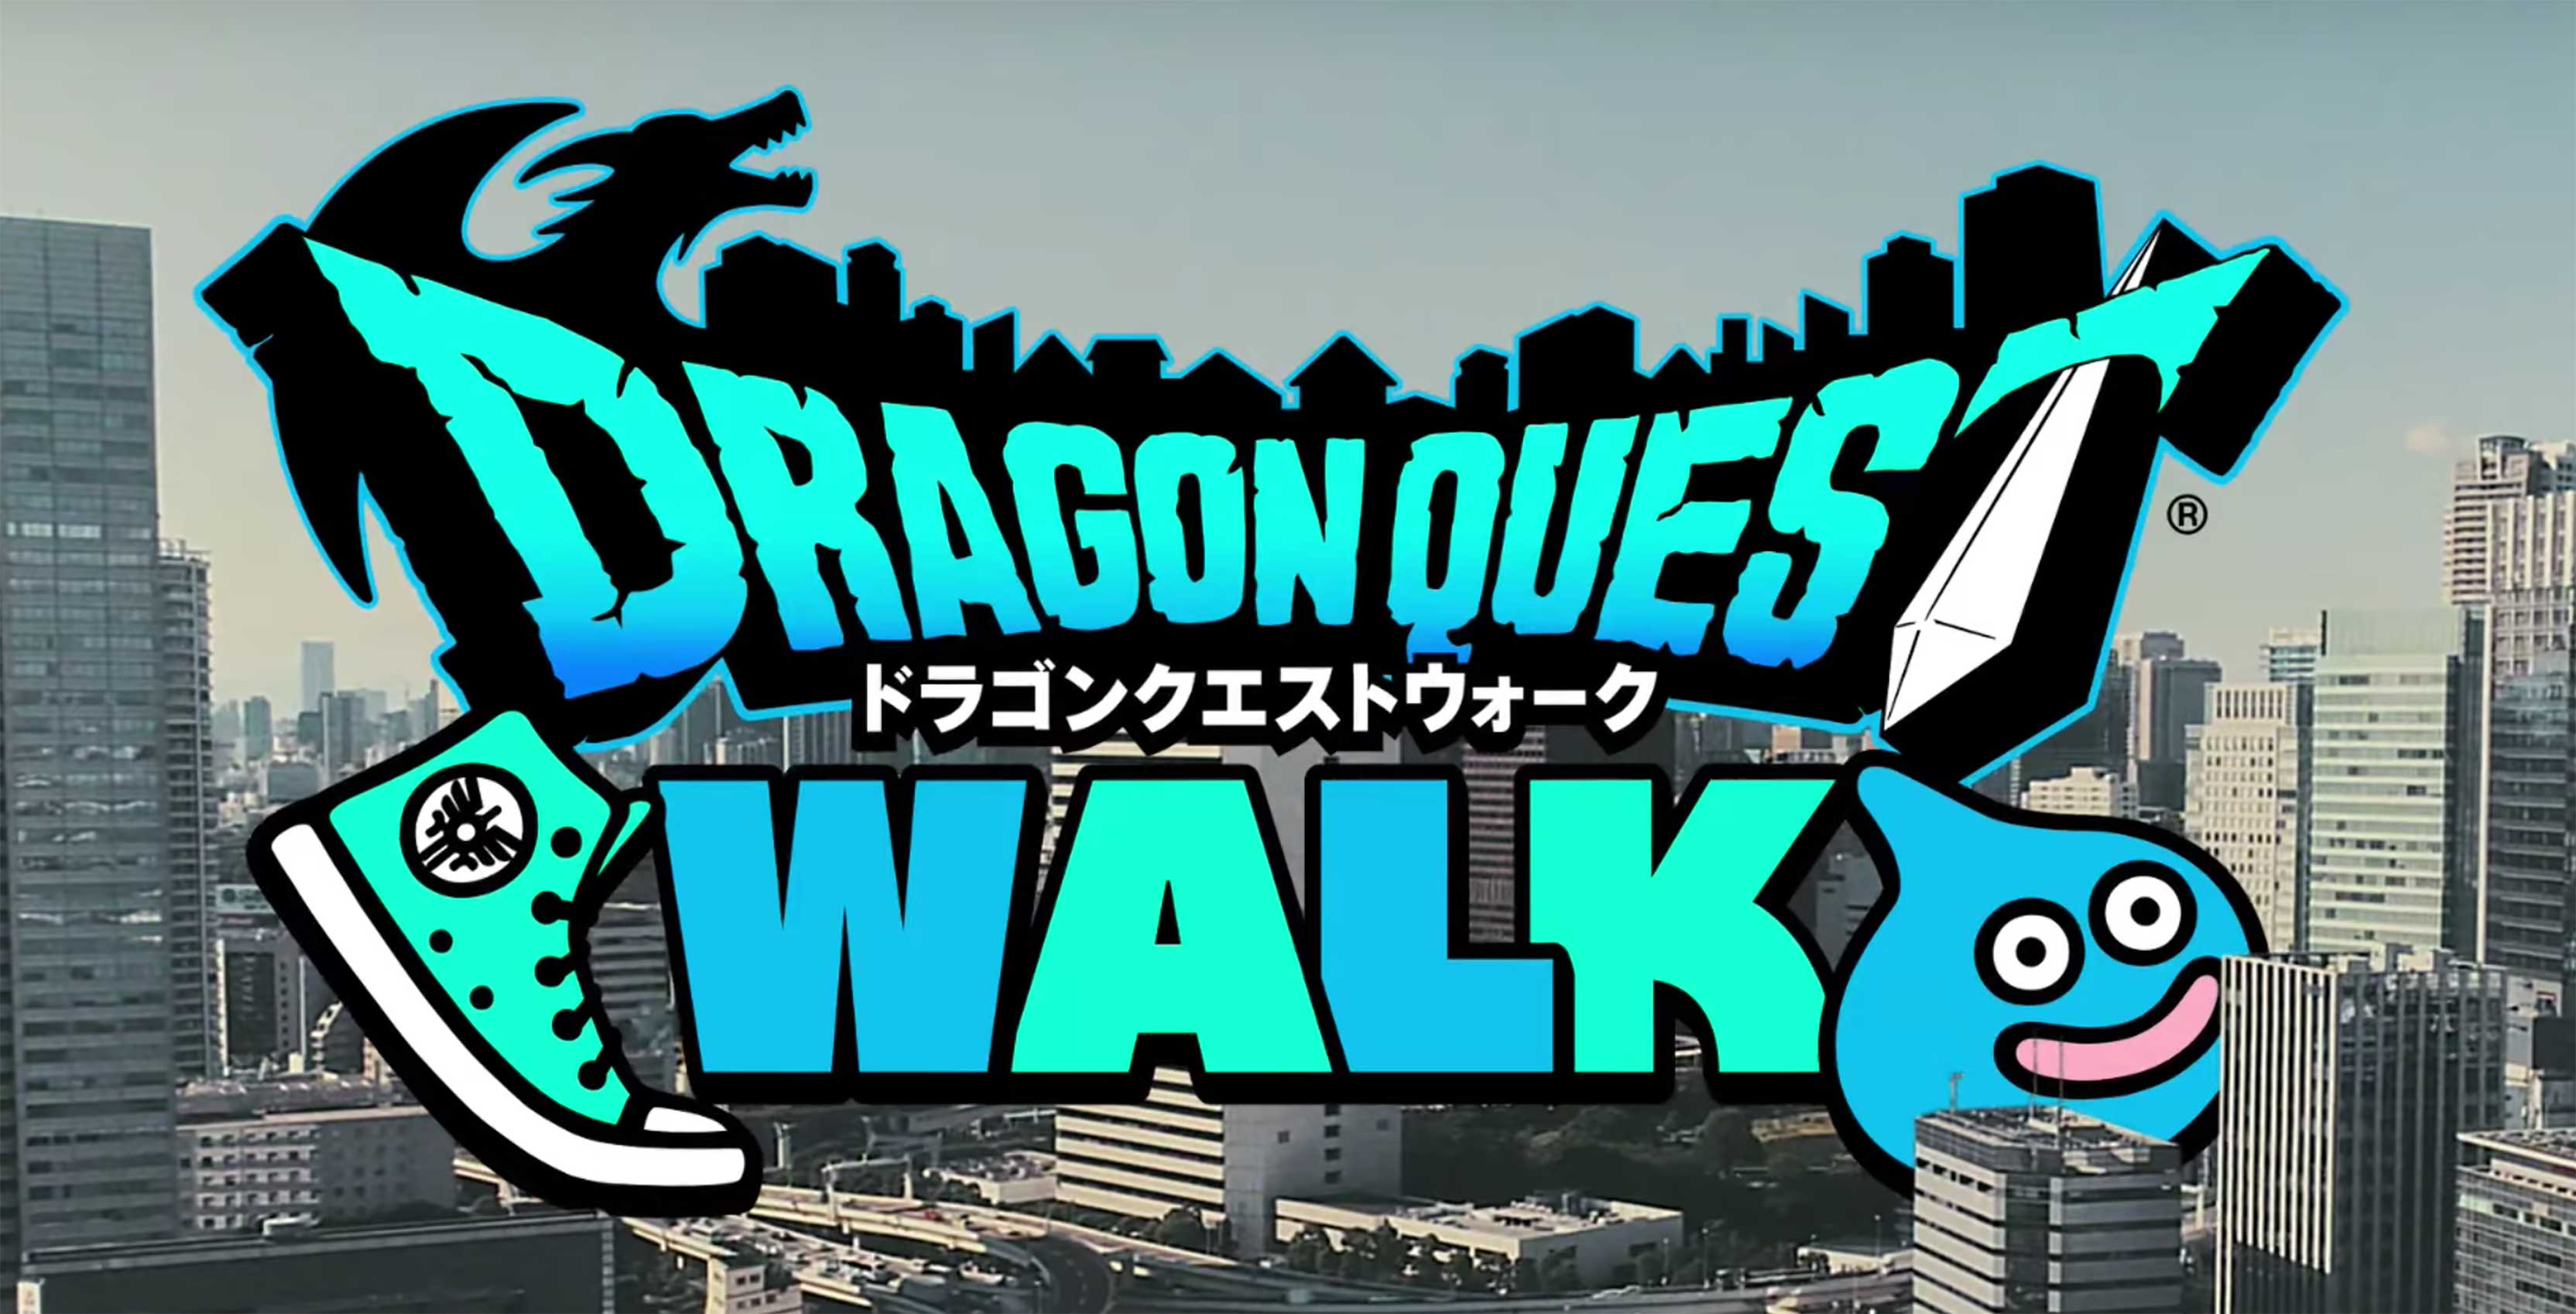 2452de1d577 Square Enix announces Pokémon Go-like Dragon Quest mobile game